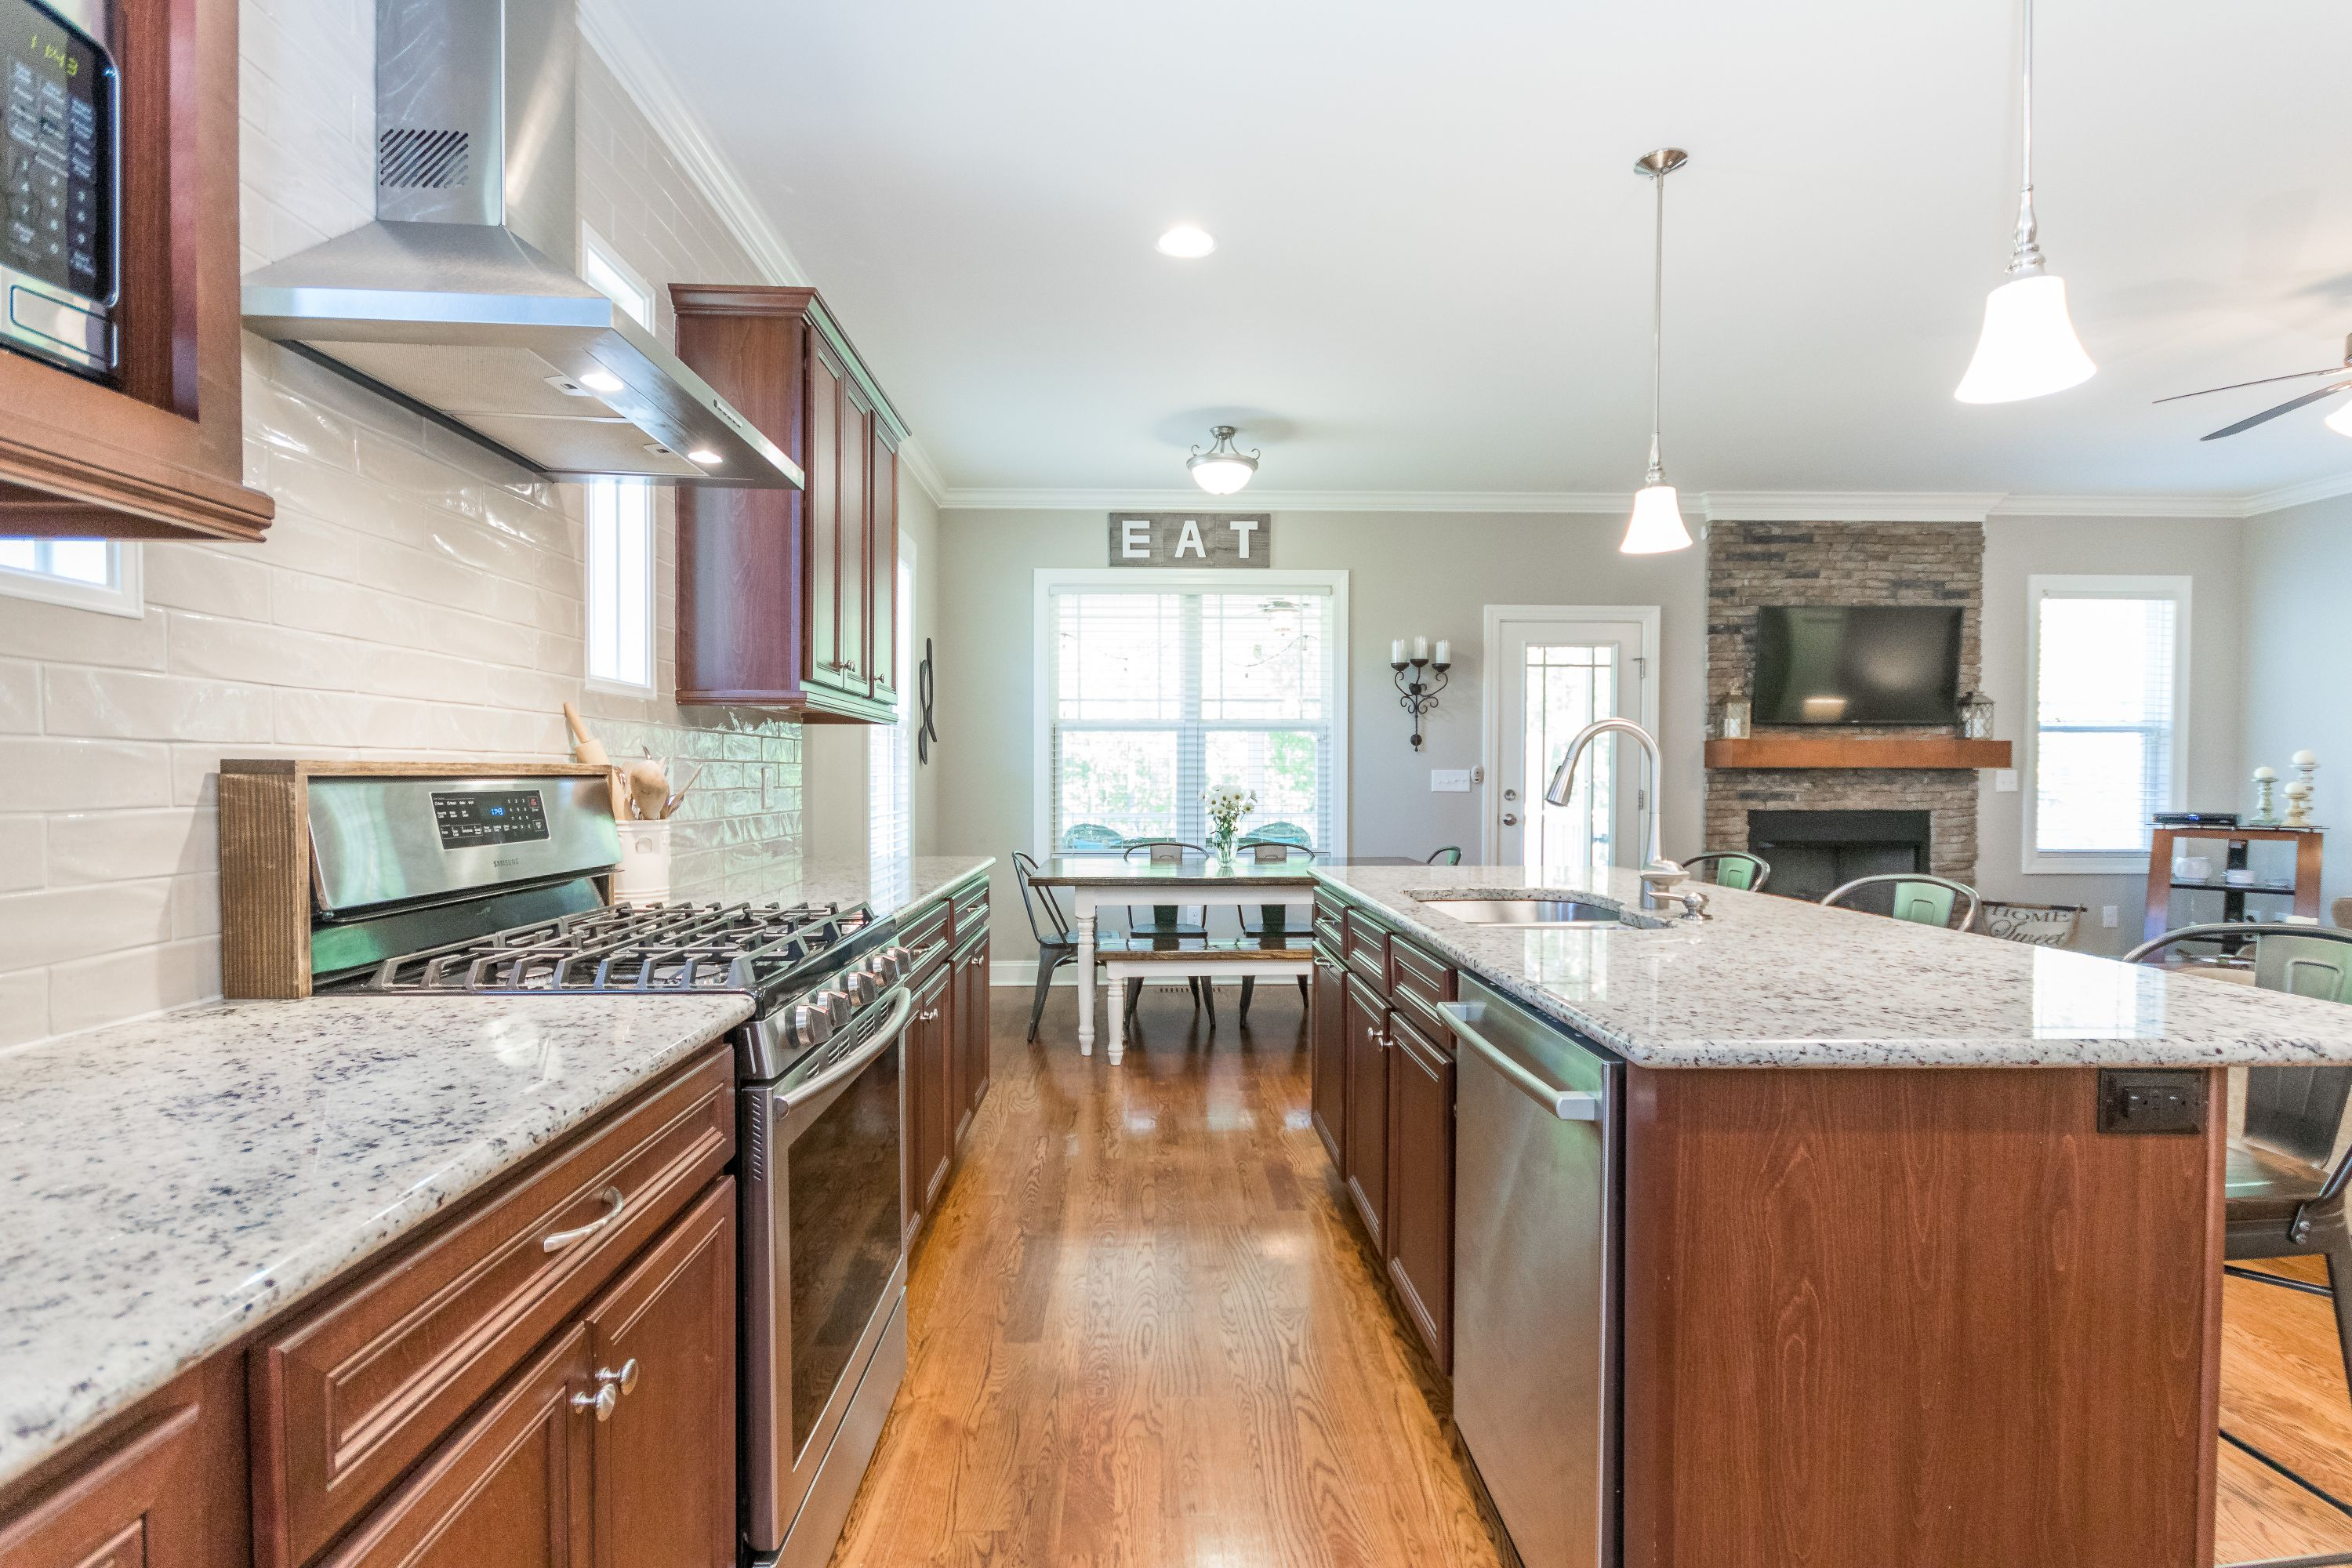 Gas range and tons of granite counter space